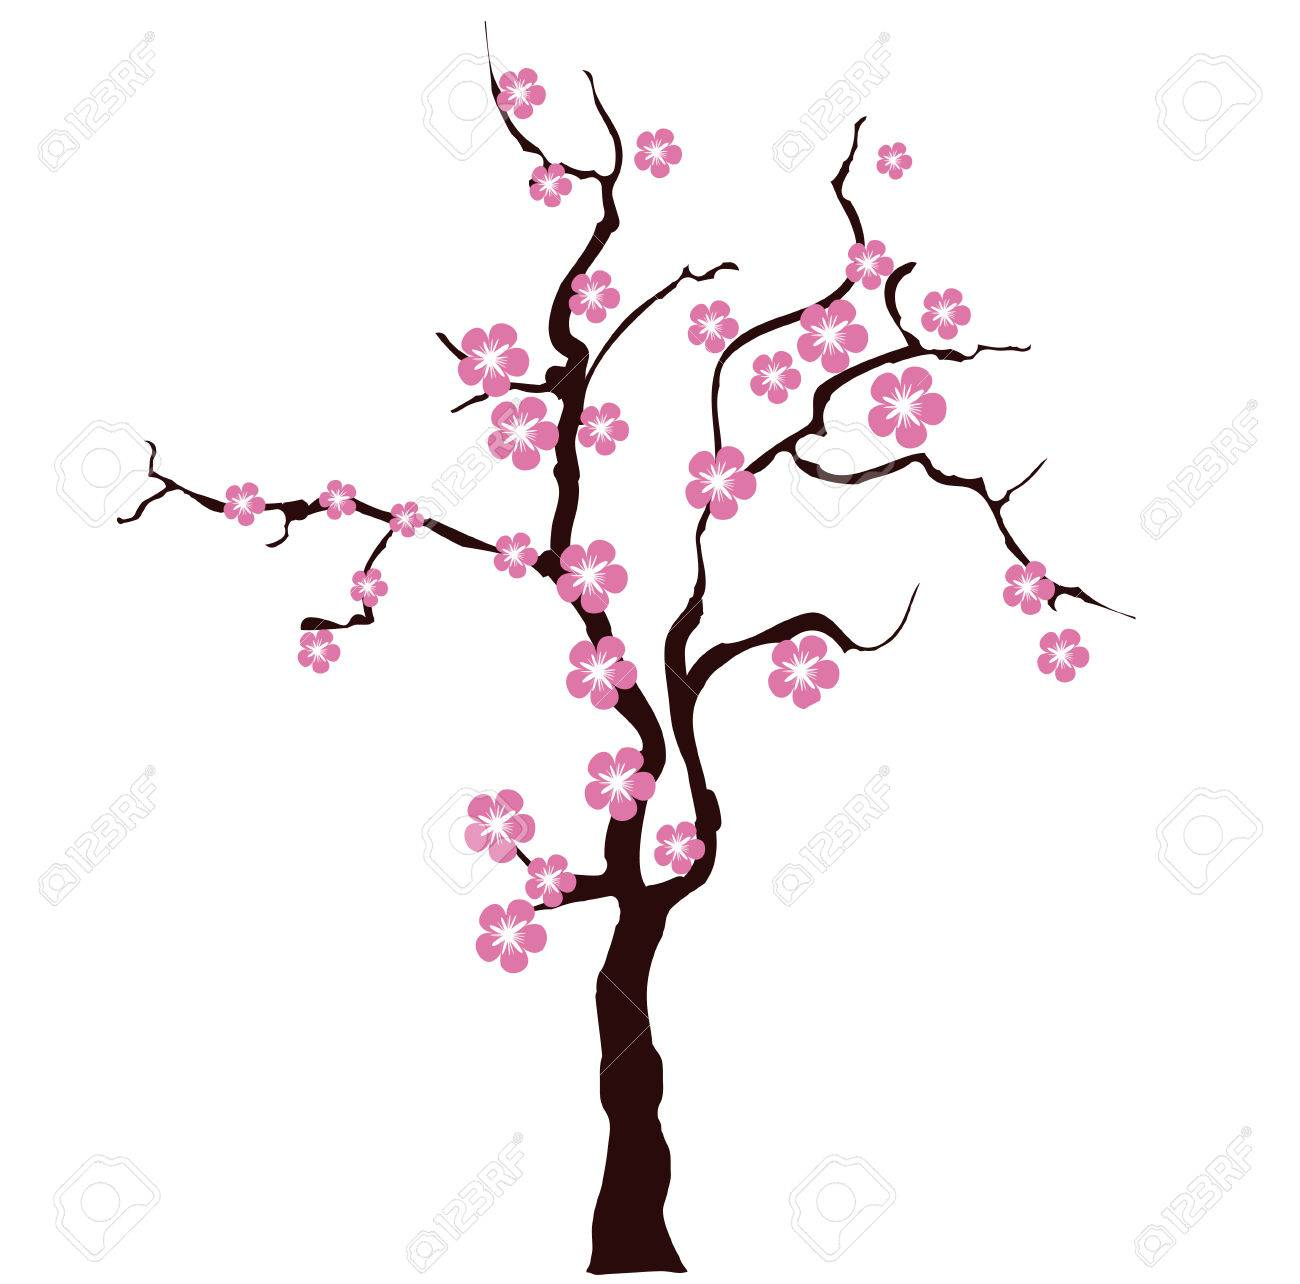 card with stylized cherry blossom vector image for design royalty rh 123rf com cherry blossom vector outline cherry blossom vector black and white